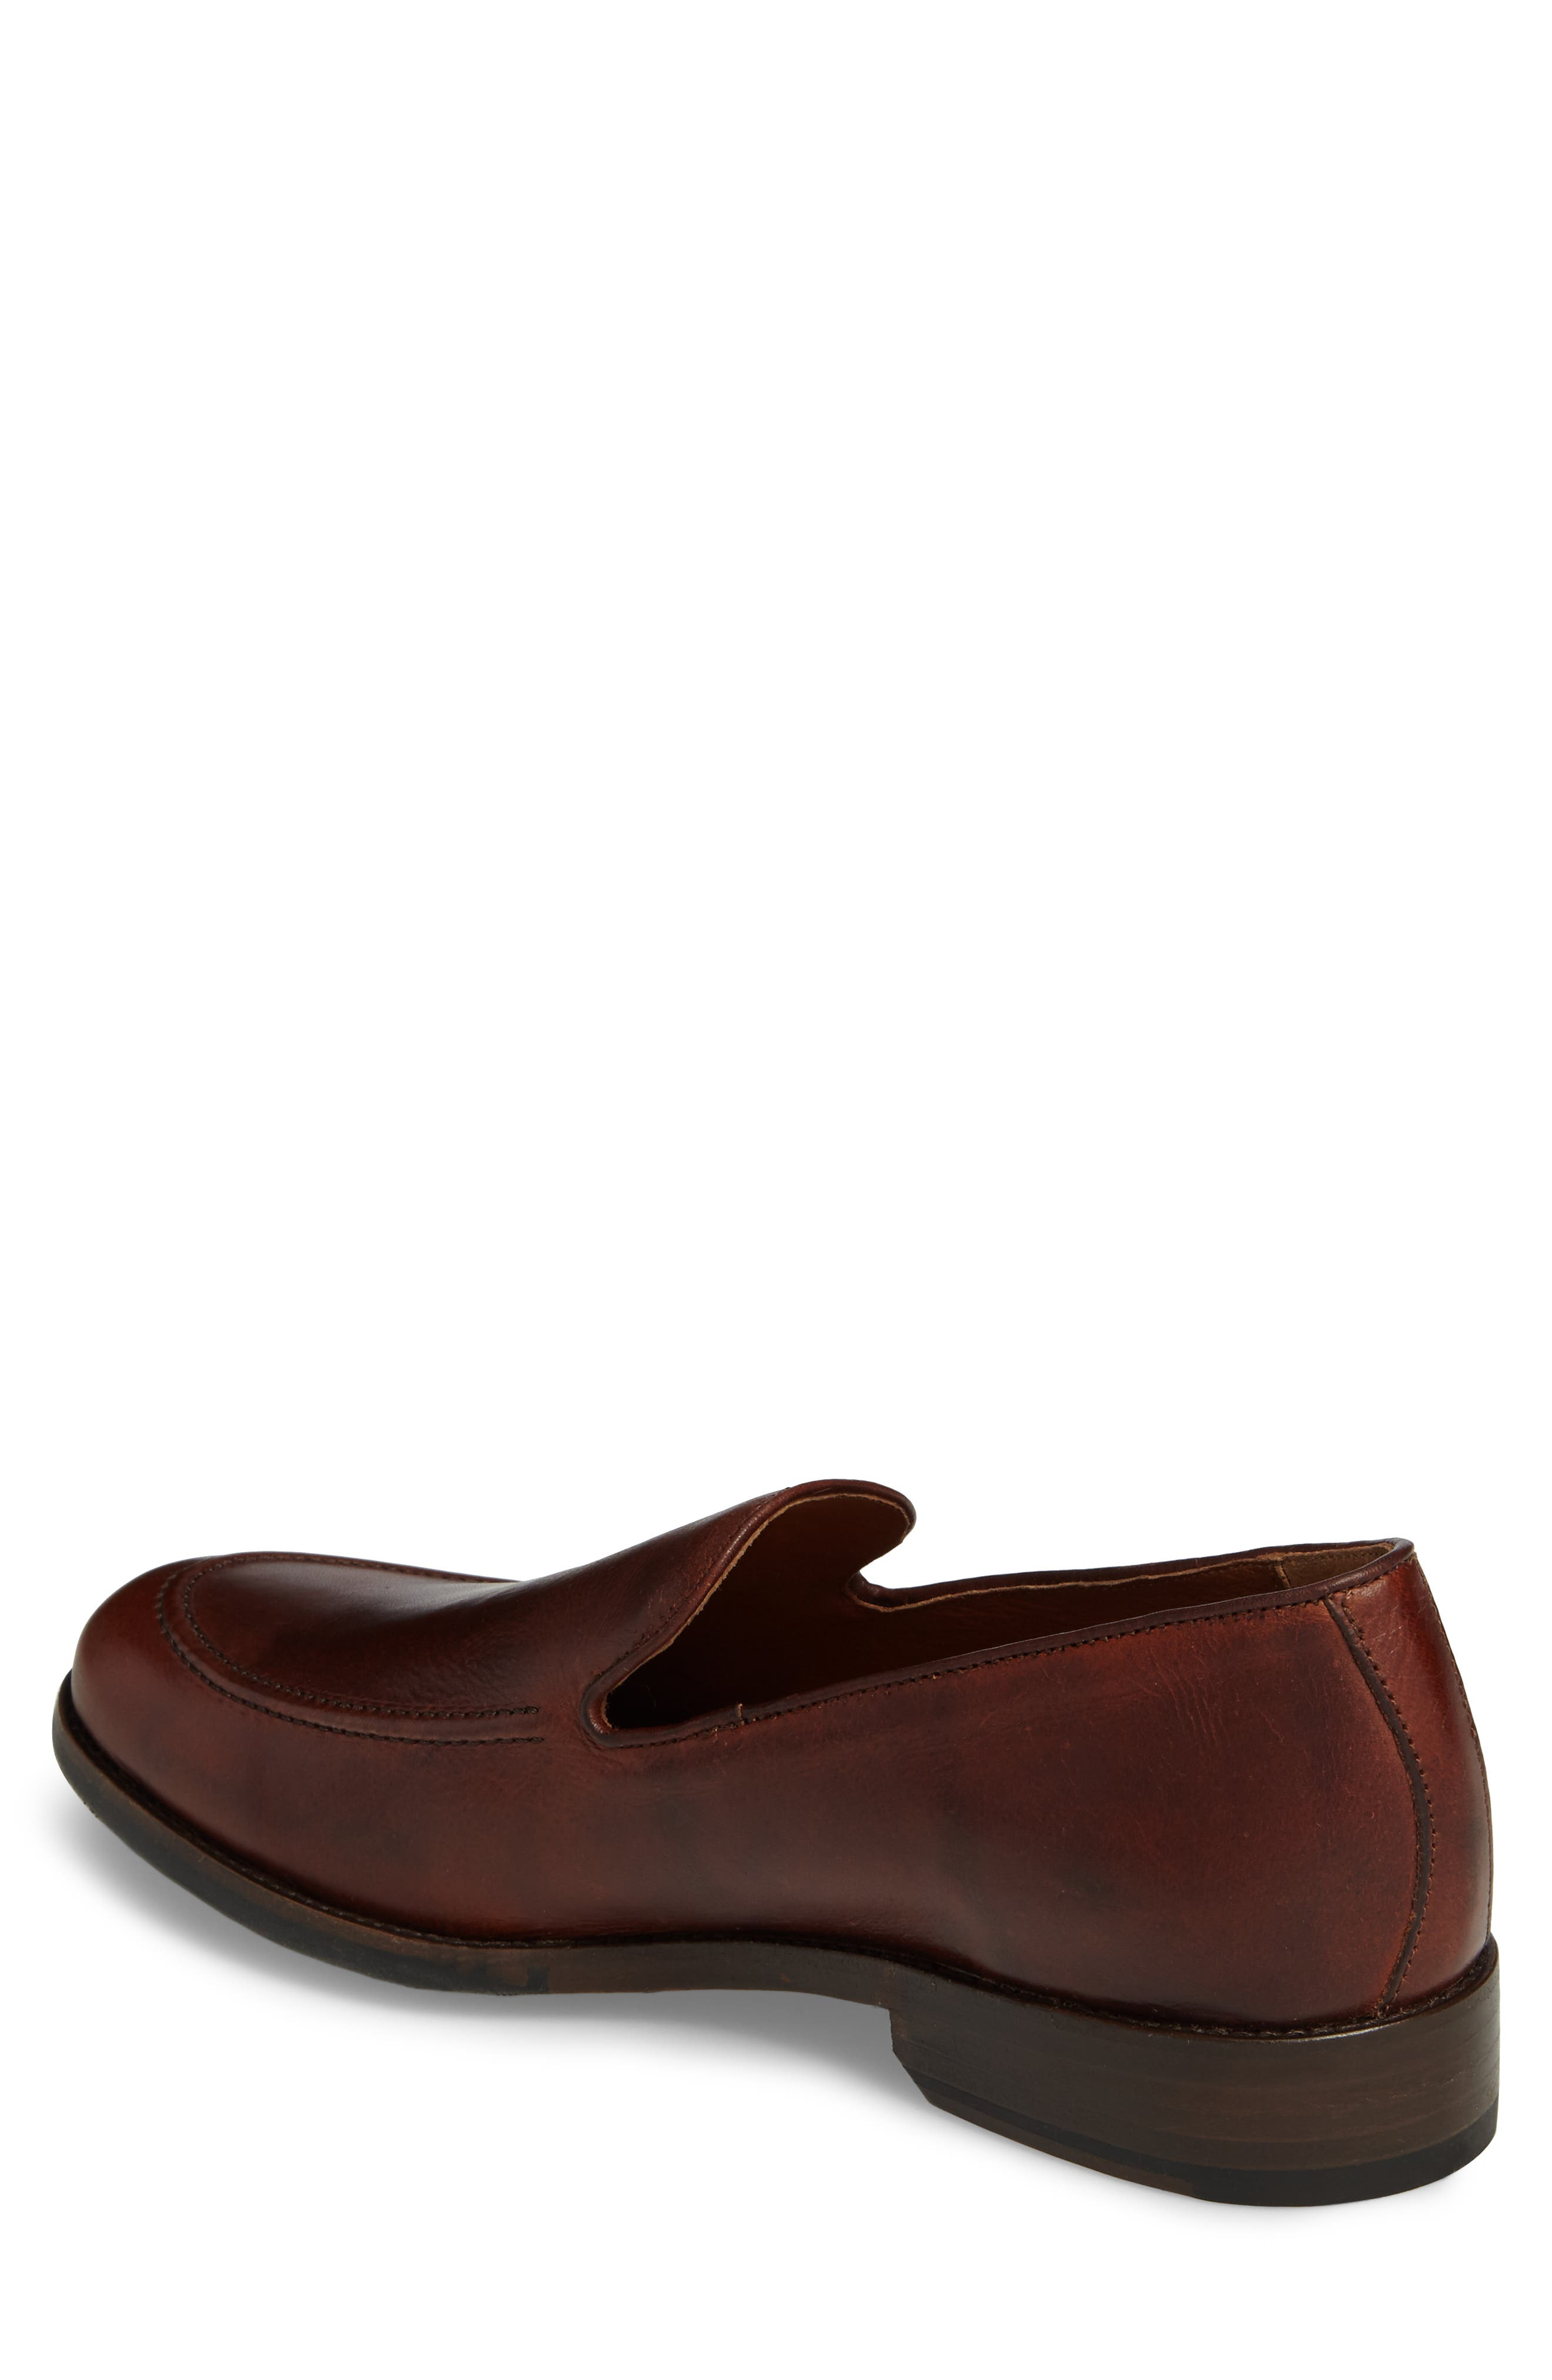 Jefferson Venetian Loafer,                             Alternate thumbnail 2, color,                             BROWN